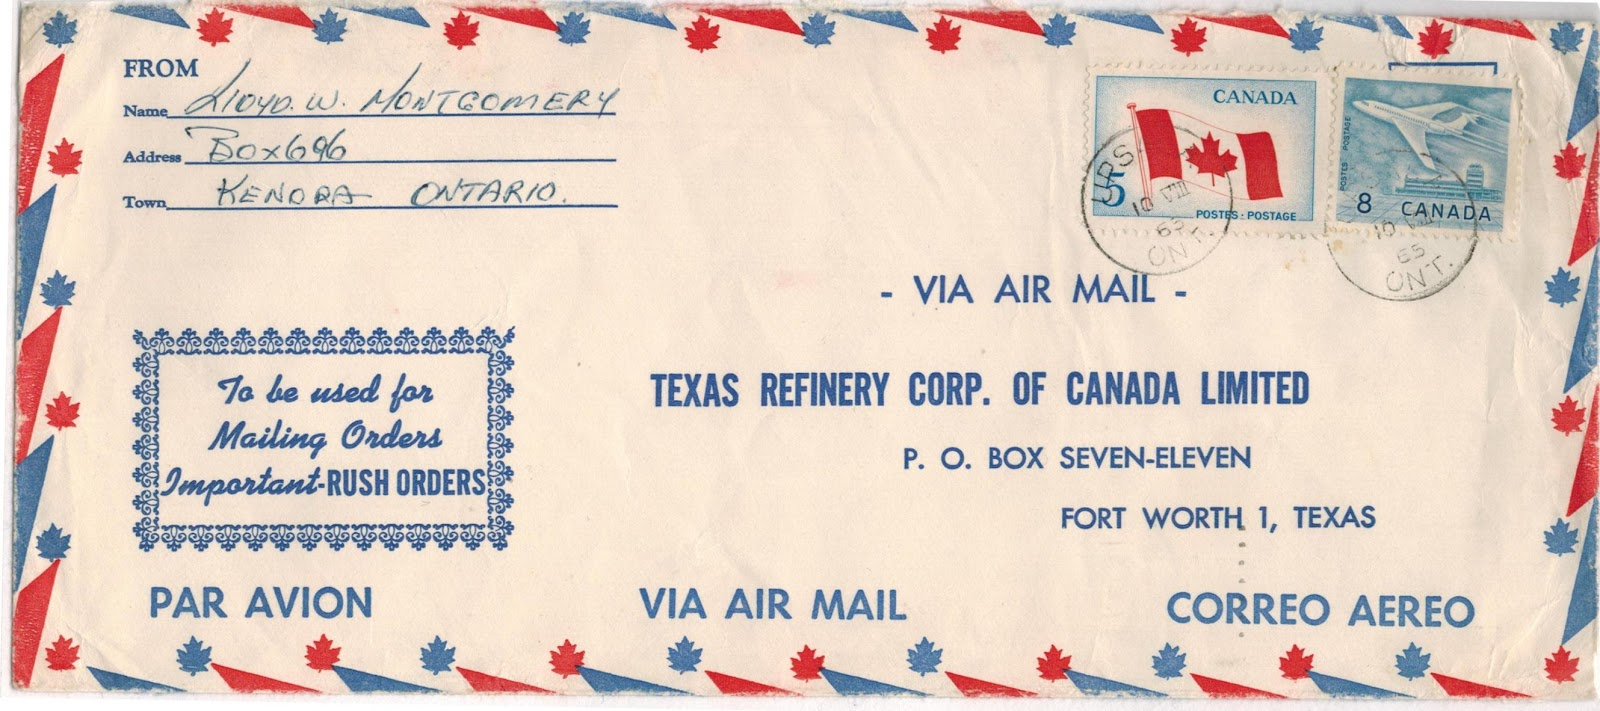 Mail A Letter 7 cents air mail letter rate